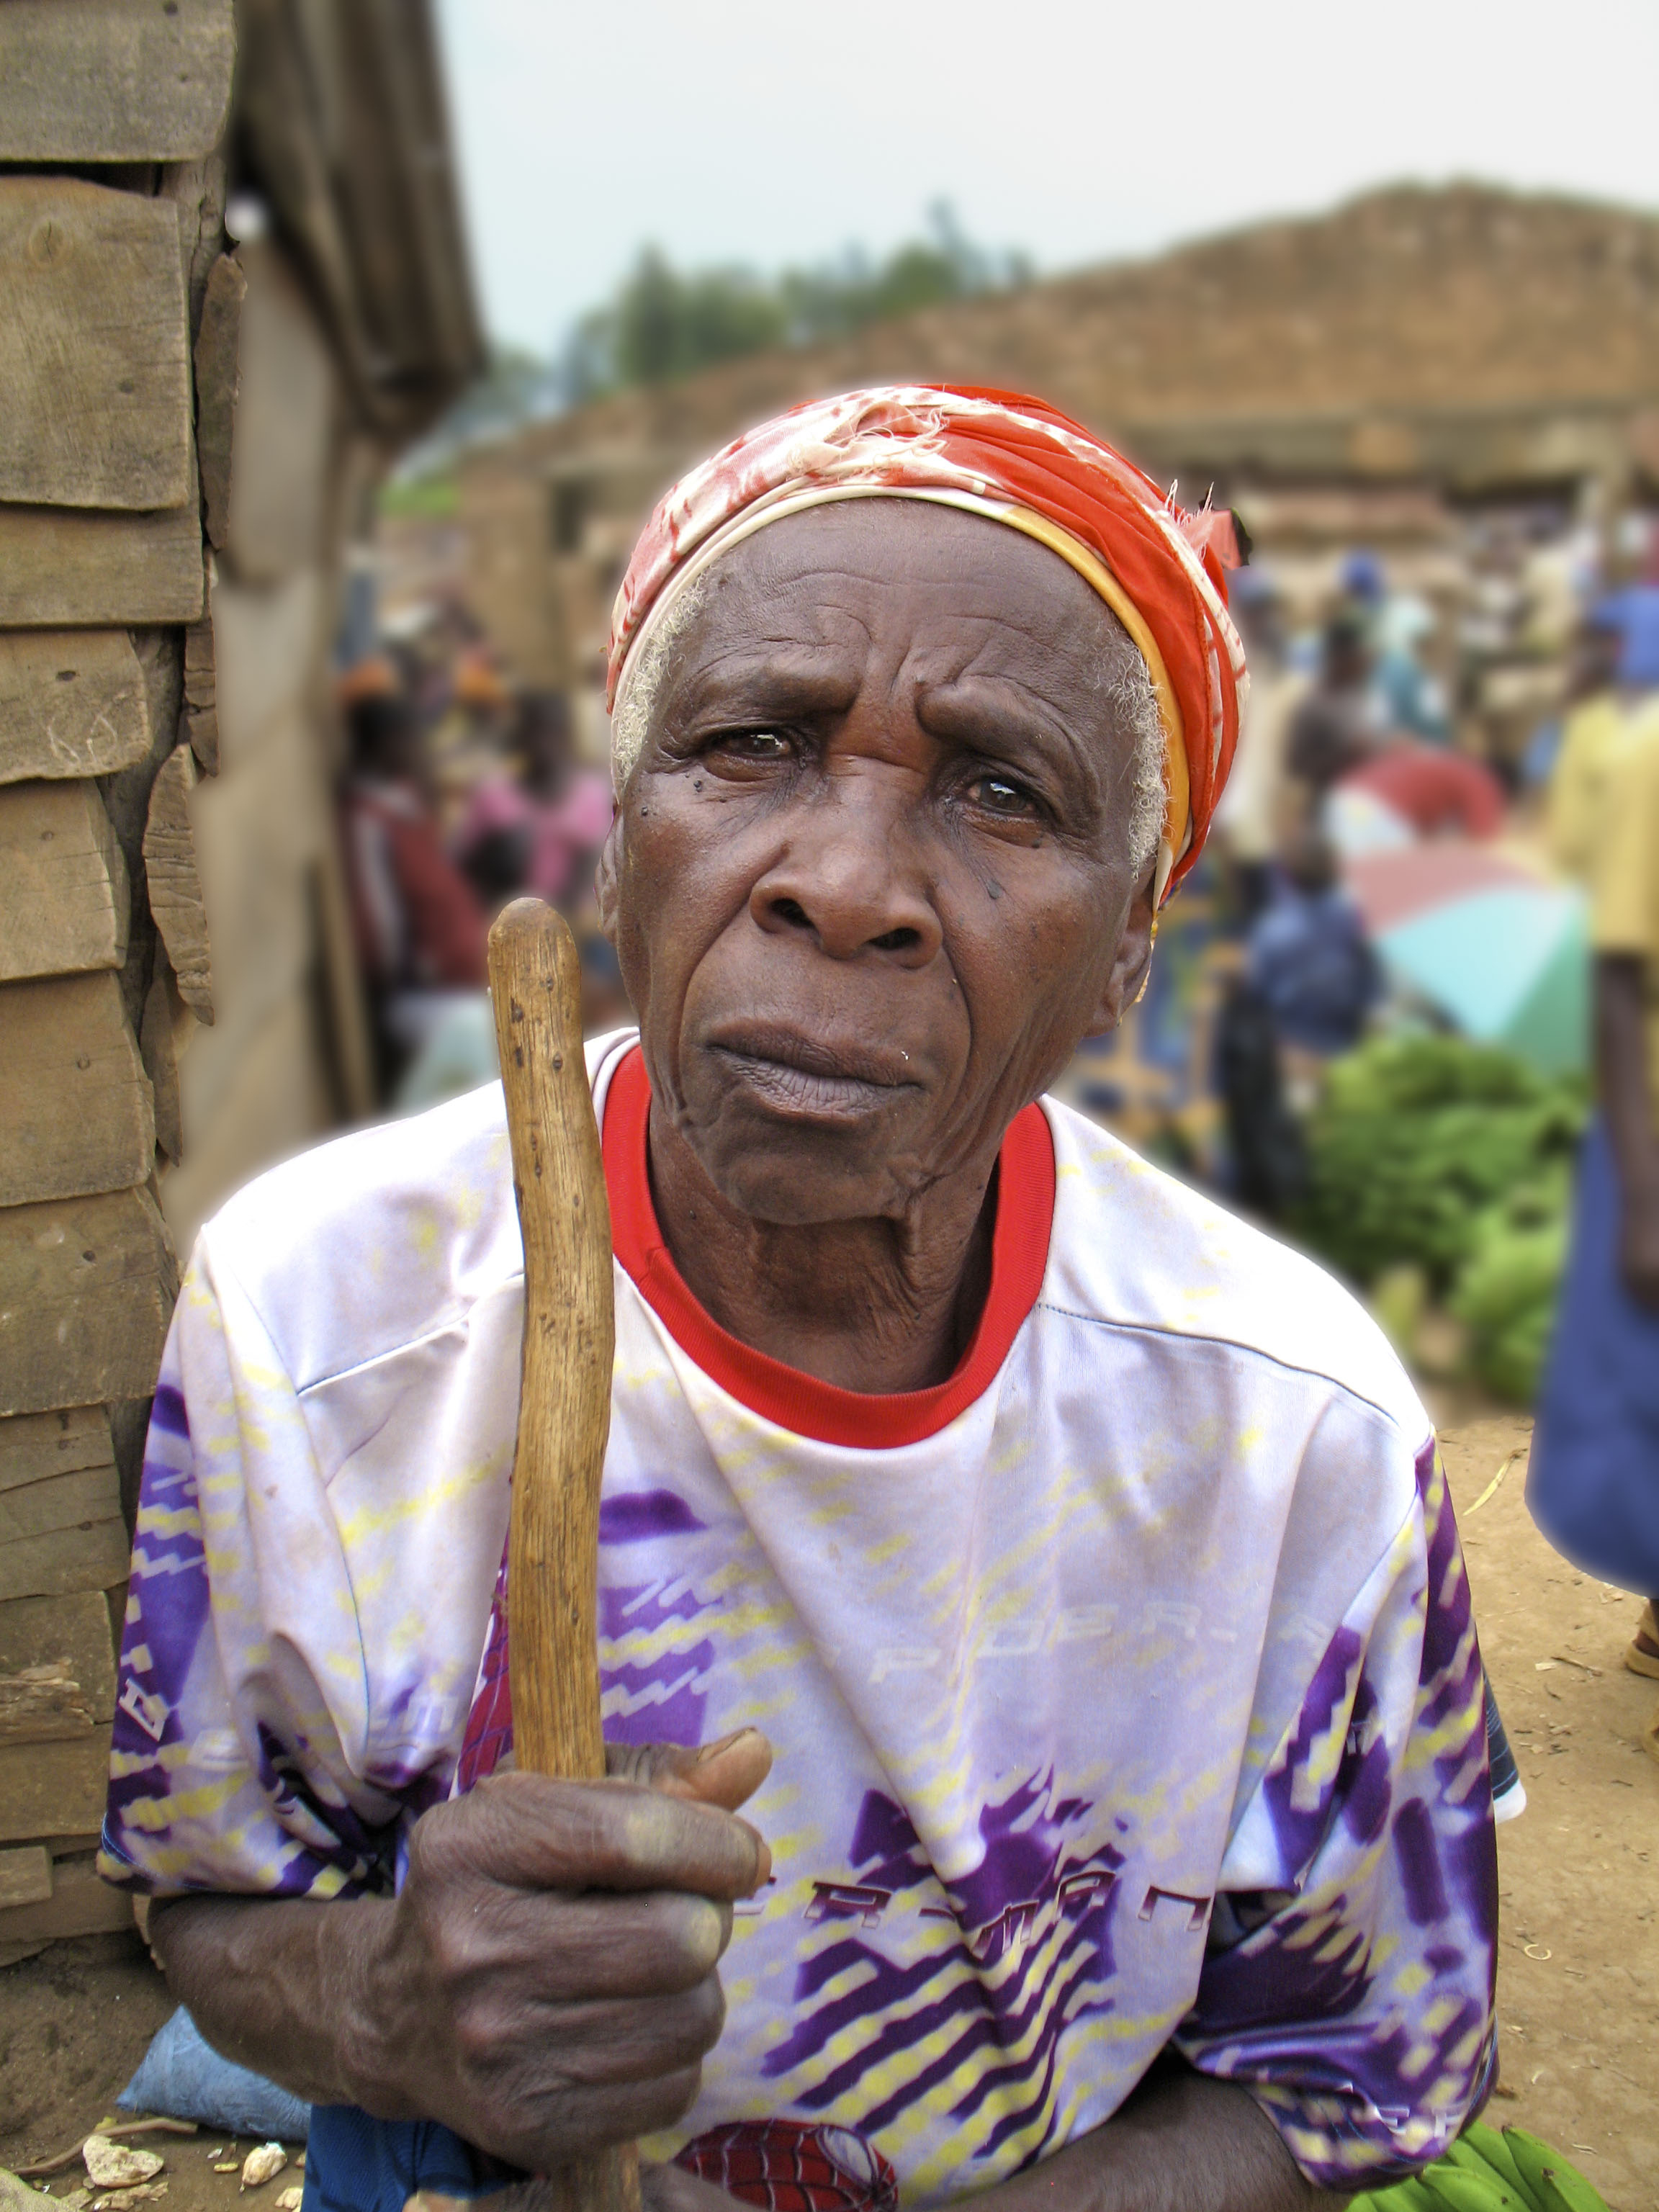 Market-woman with cane.jpg